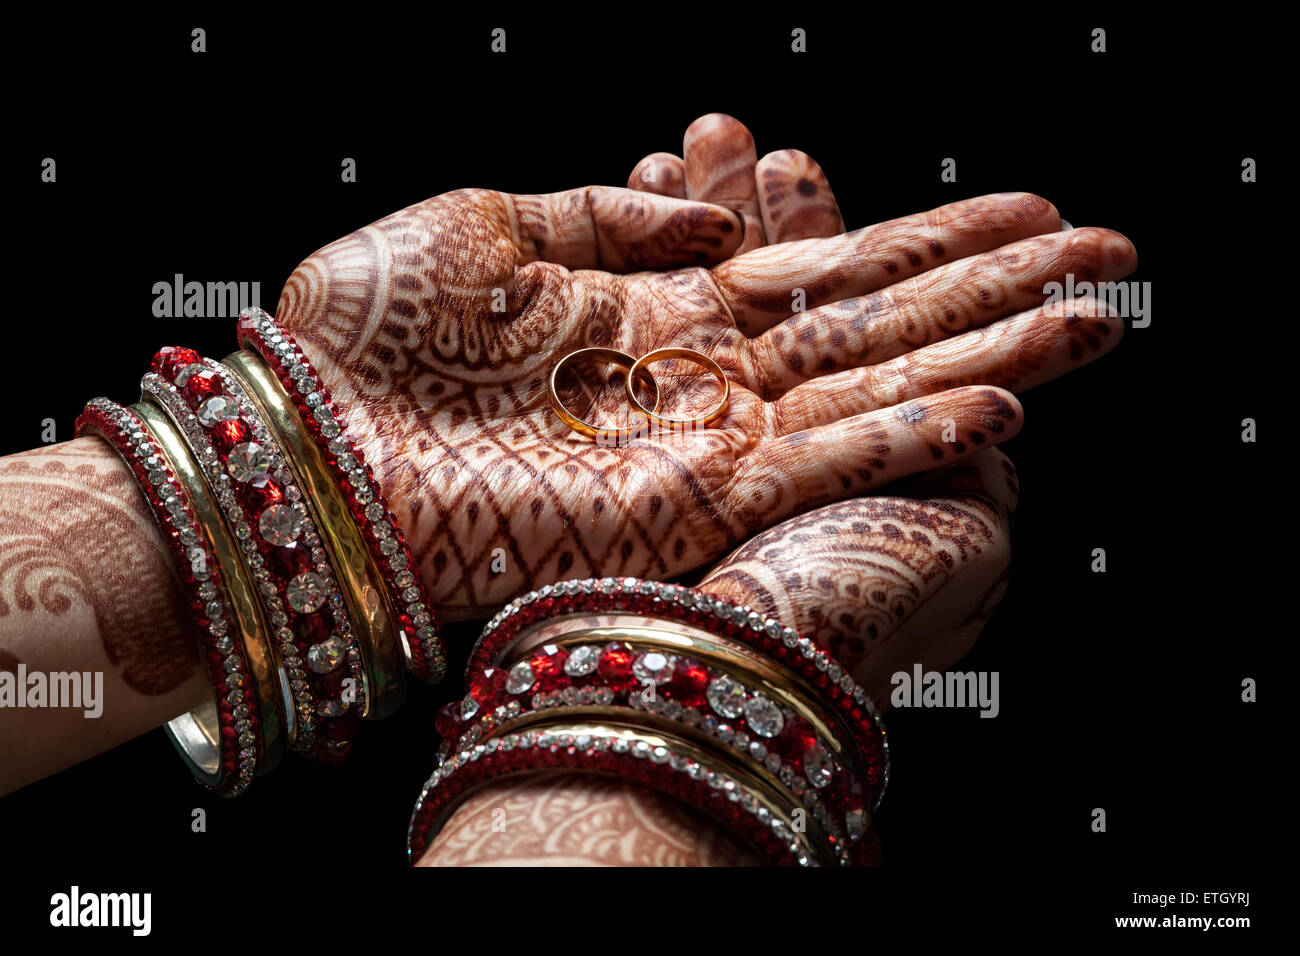 Woman Hands With Henna Holding Two Golden Wedding Rings On Black